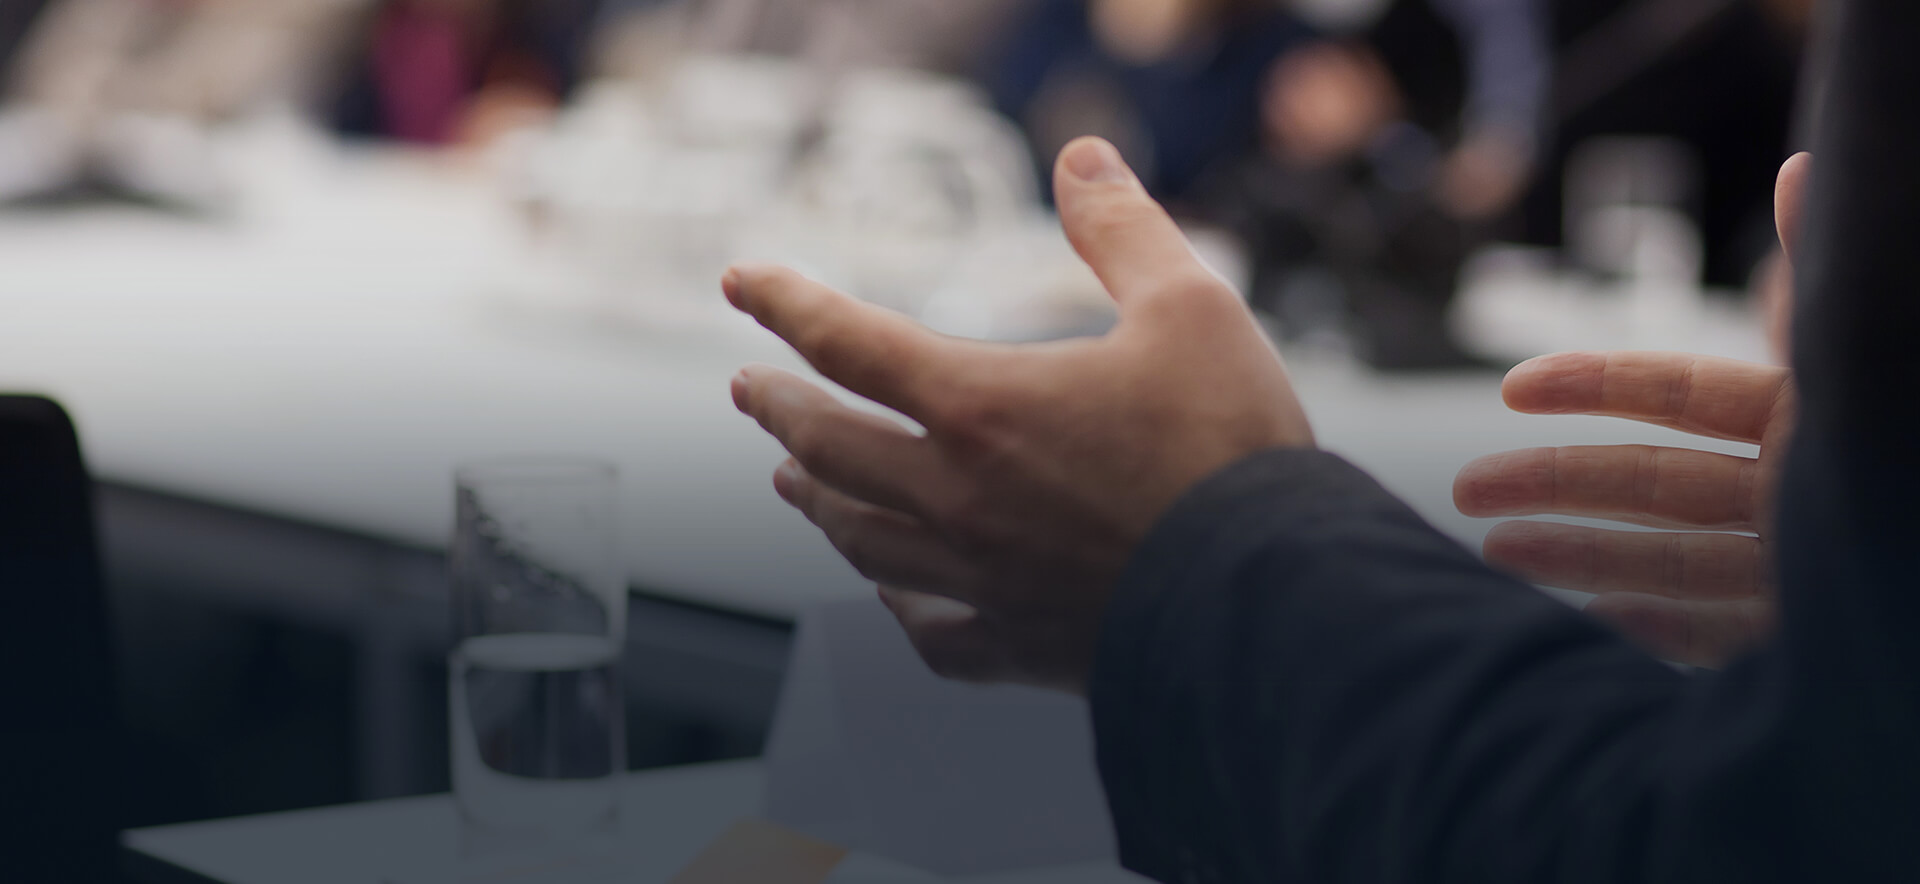 Hands at conference